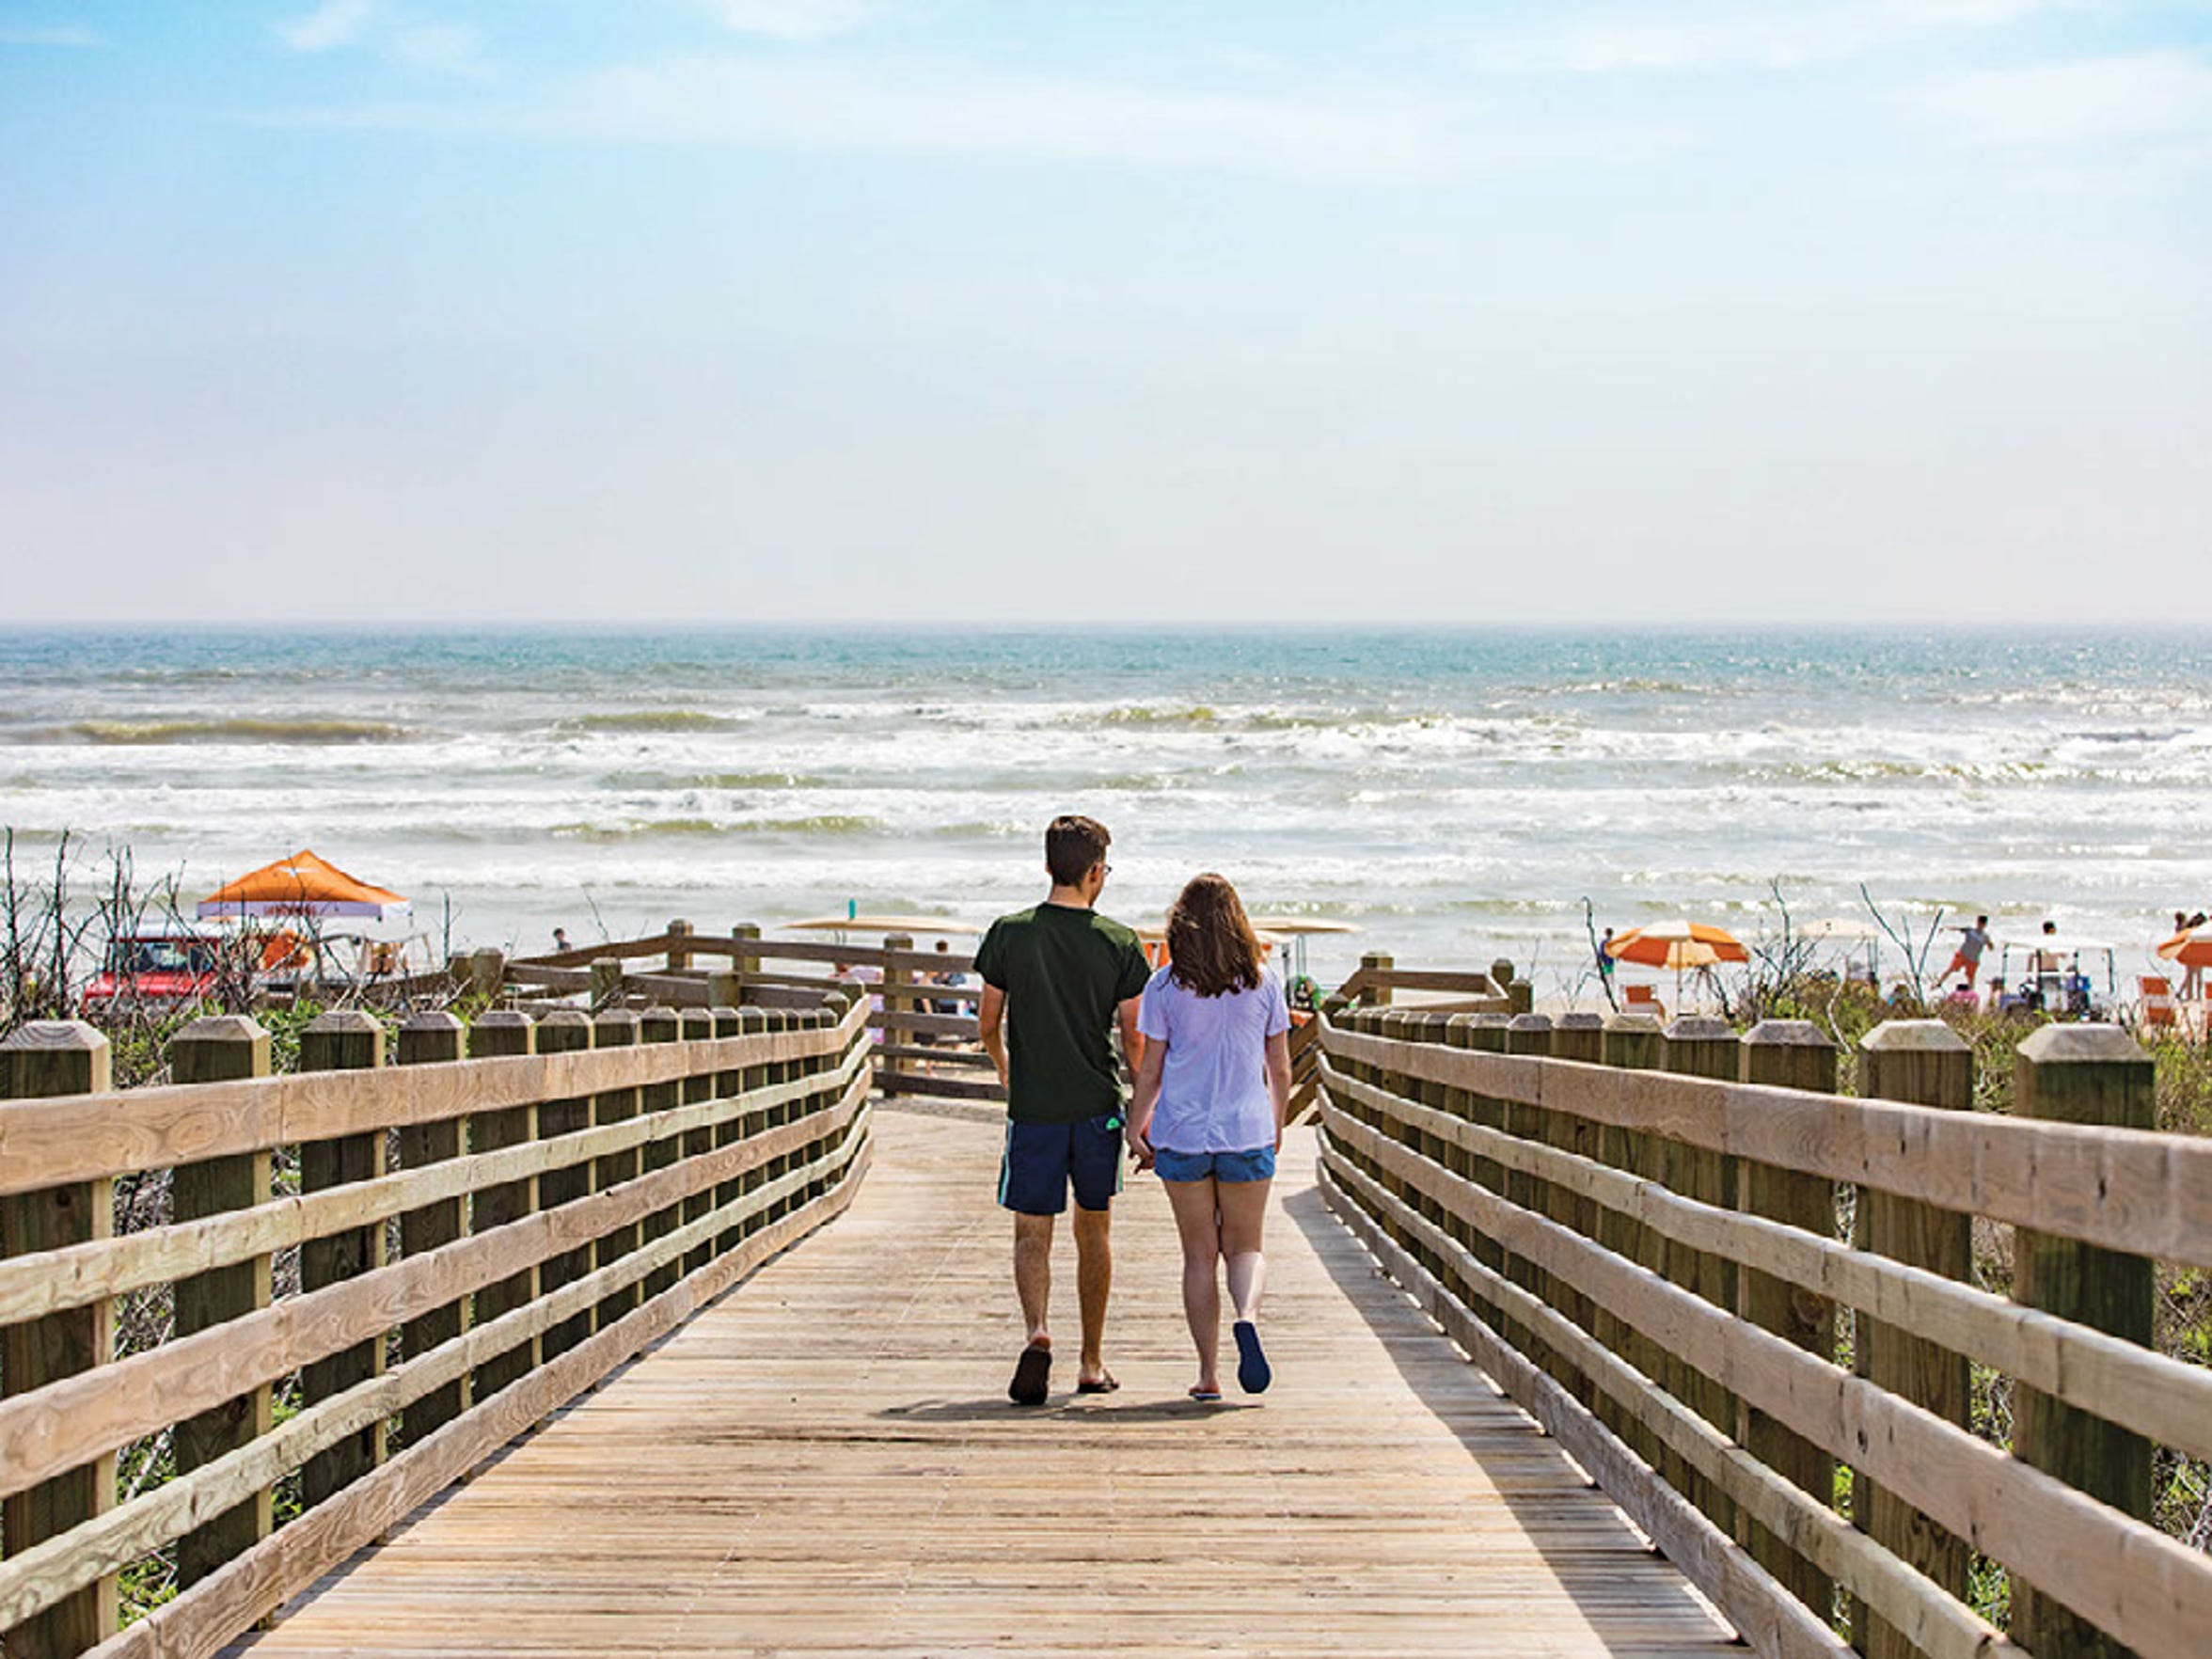 Take a trip to the beaches of Port Aransas during spring break.